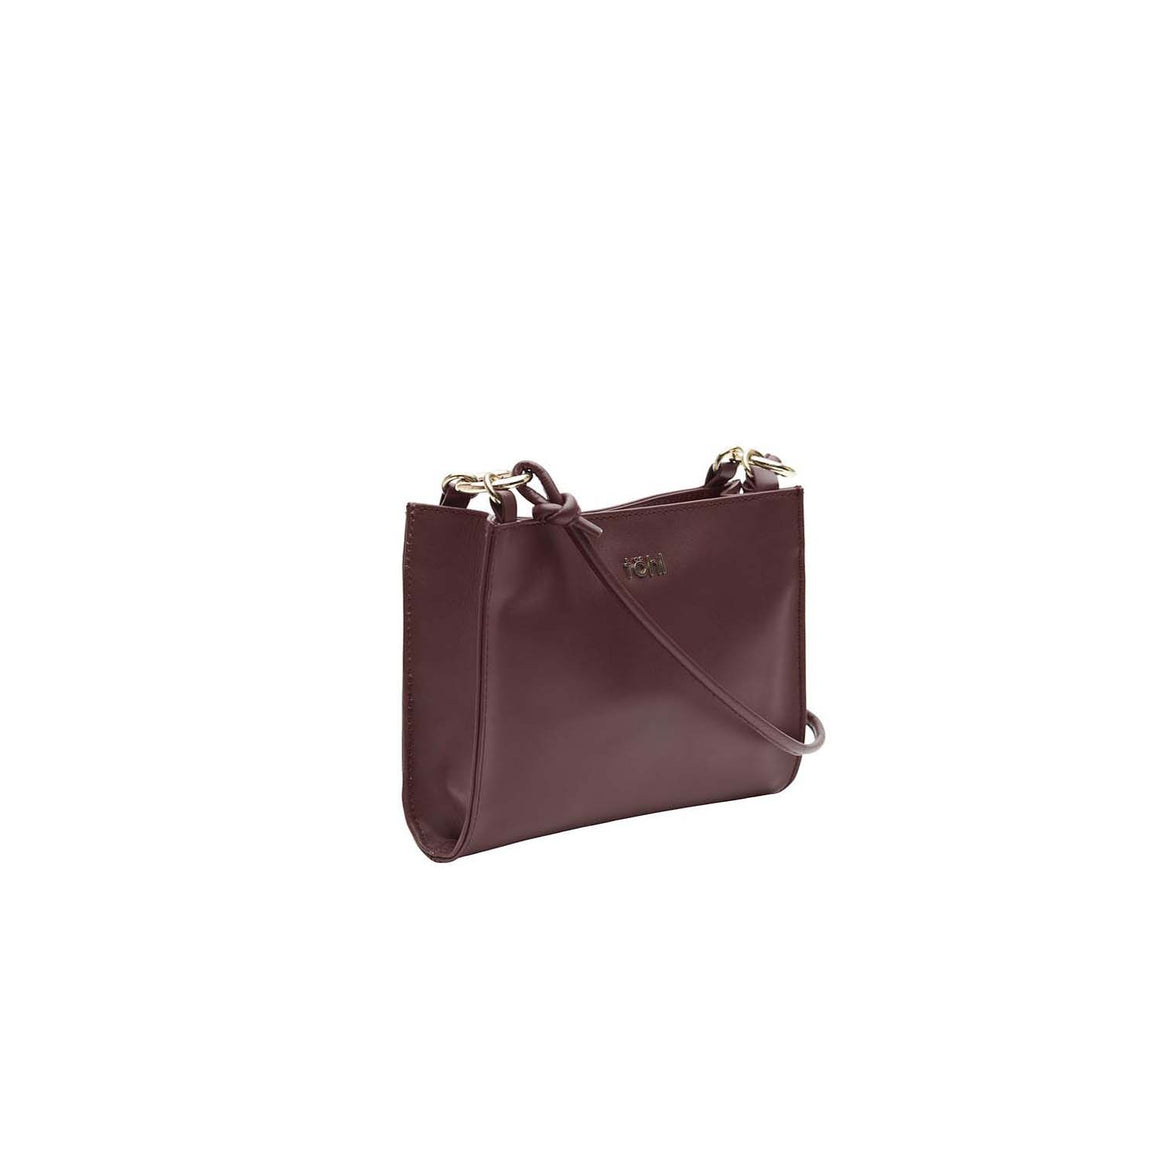 SG 0028 - TOHL BAYLIS WOMEN'S SLING & CROSSBODY BAG - CHOCO